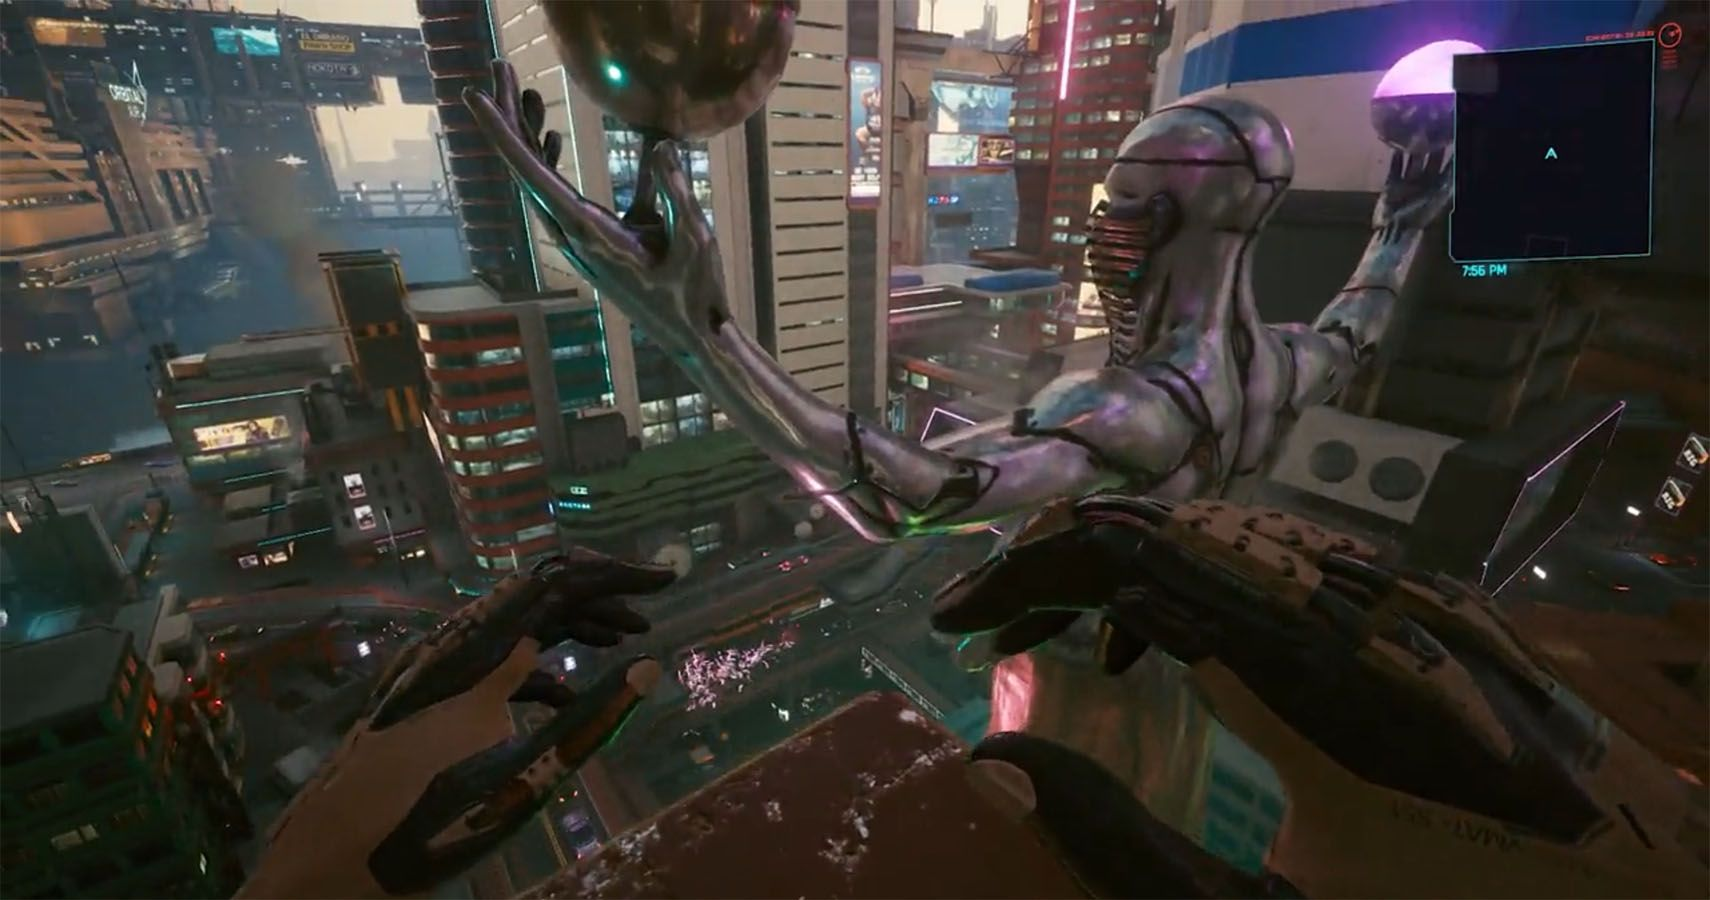 This Cyberpunk 2077 Combination Allows You To Fly Without Glitches